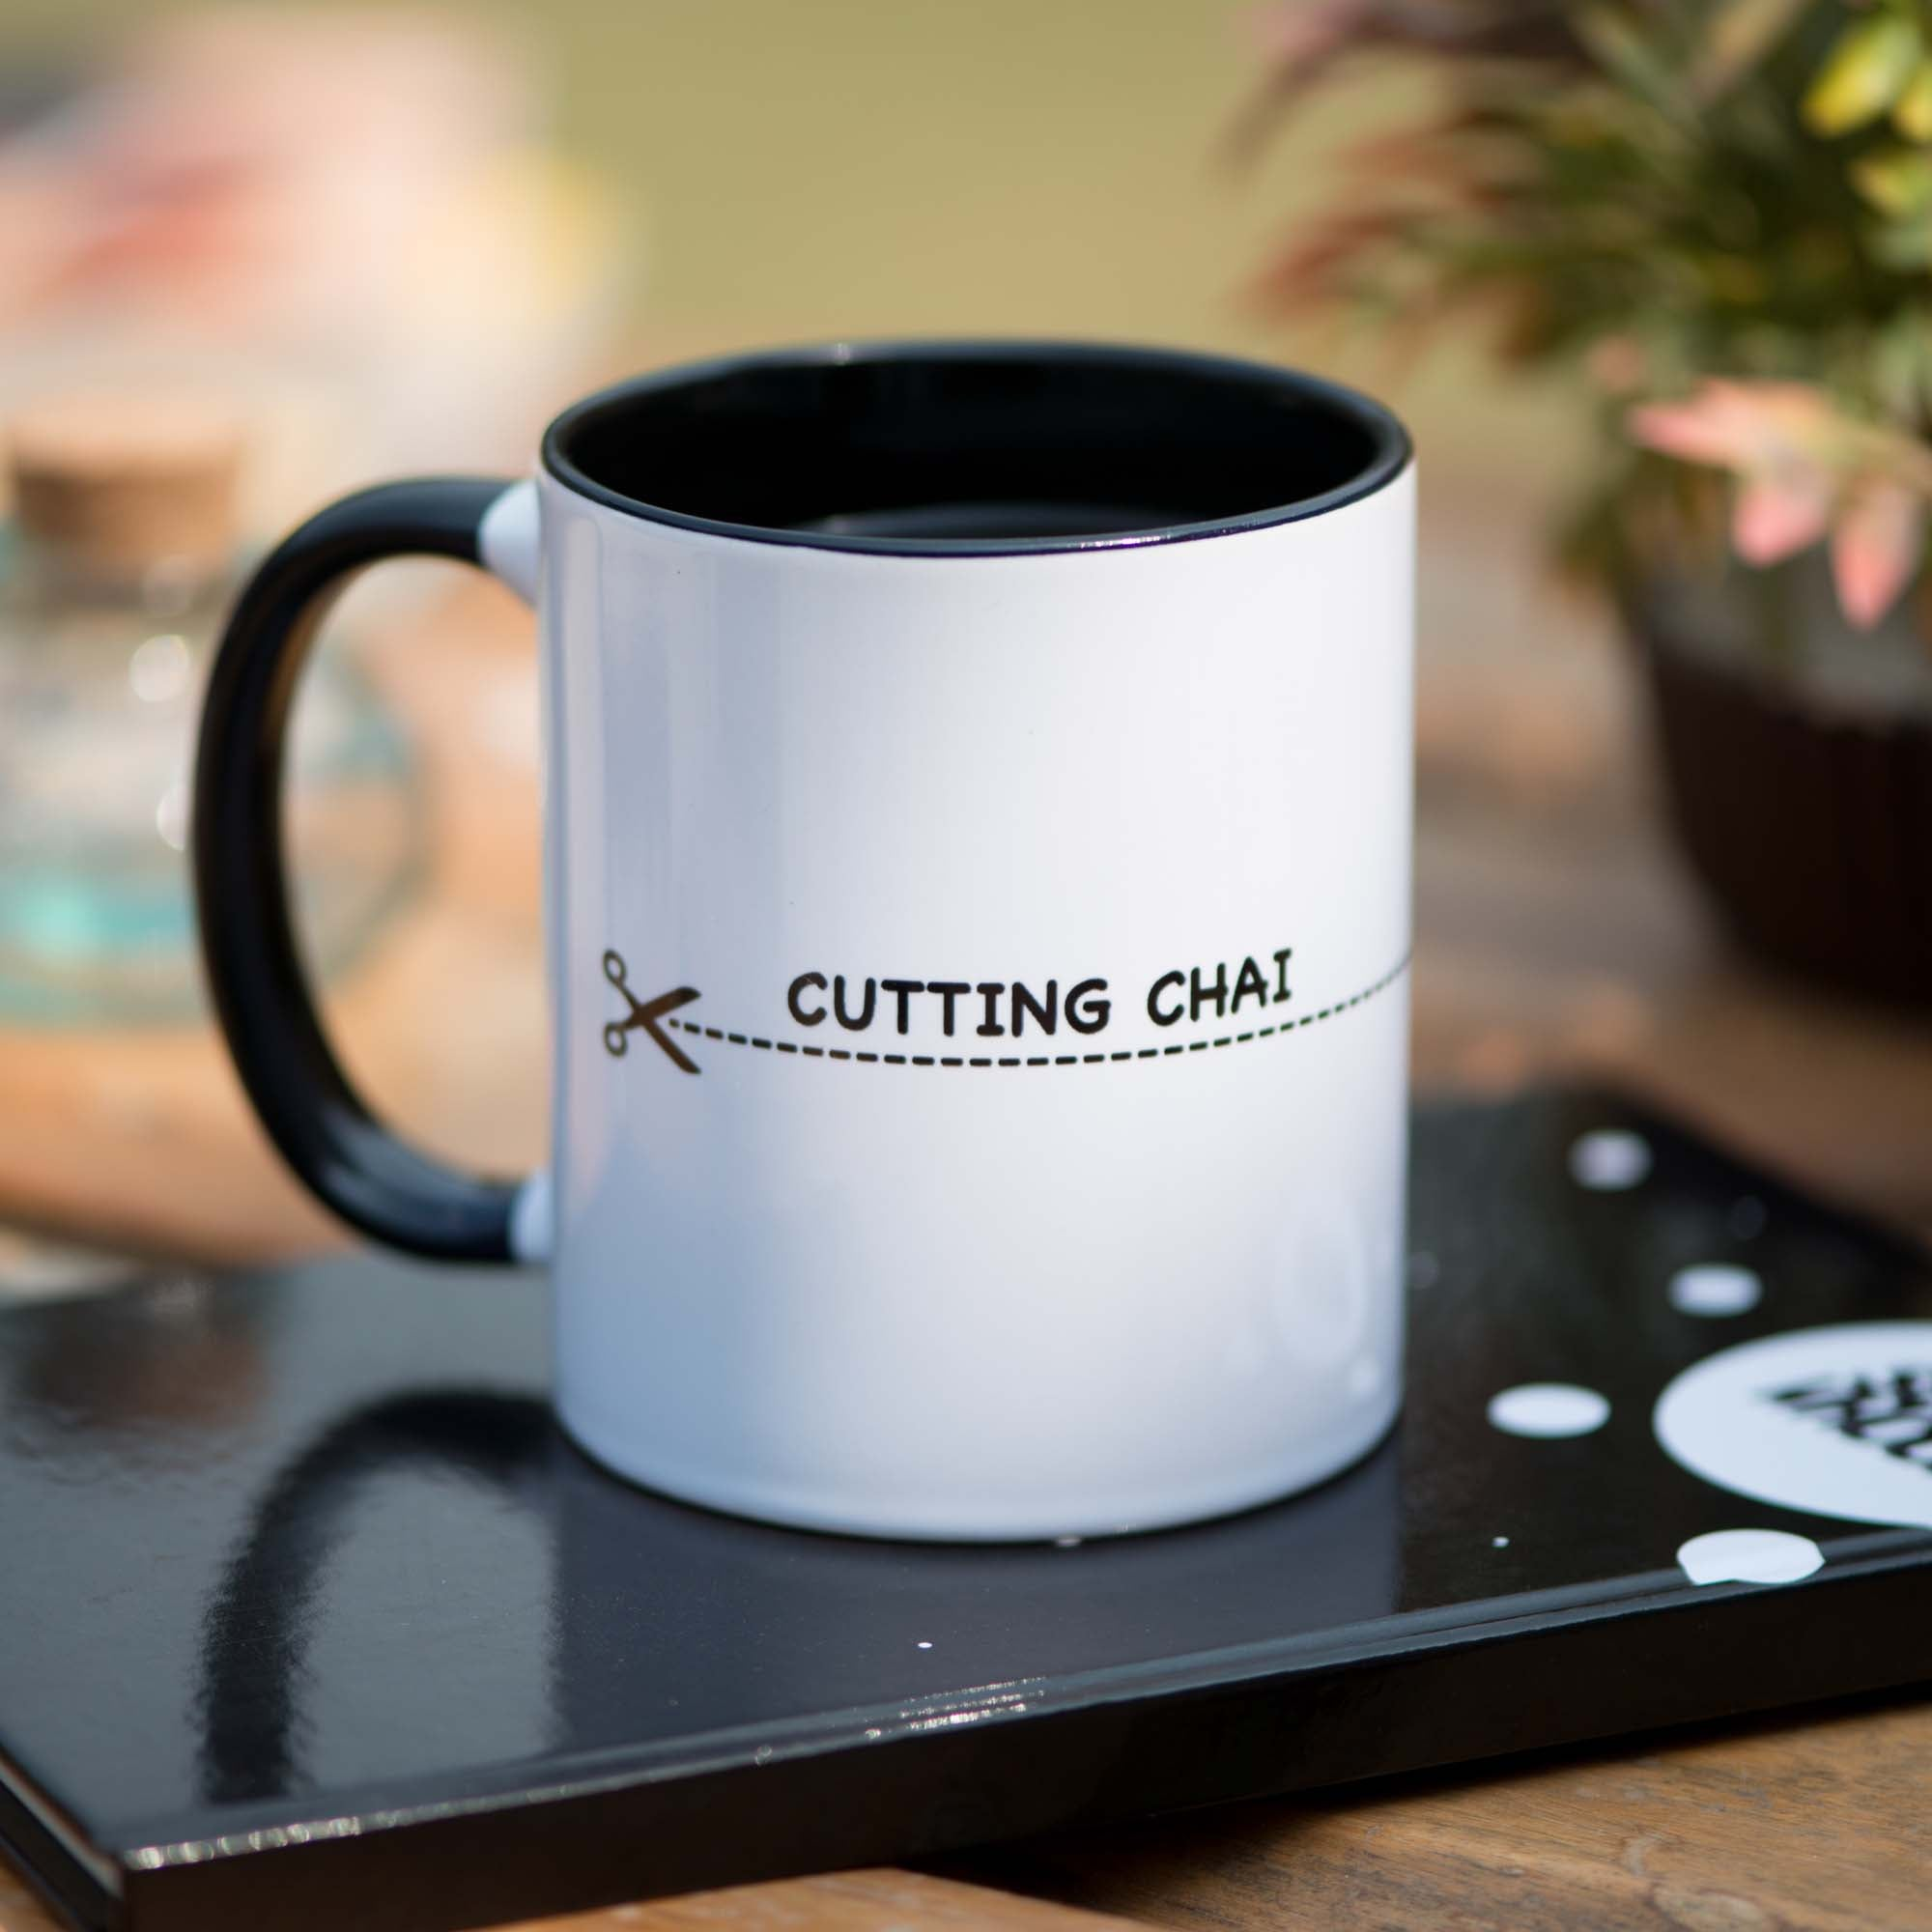 'Cutting Chai' Mug